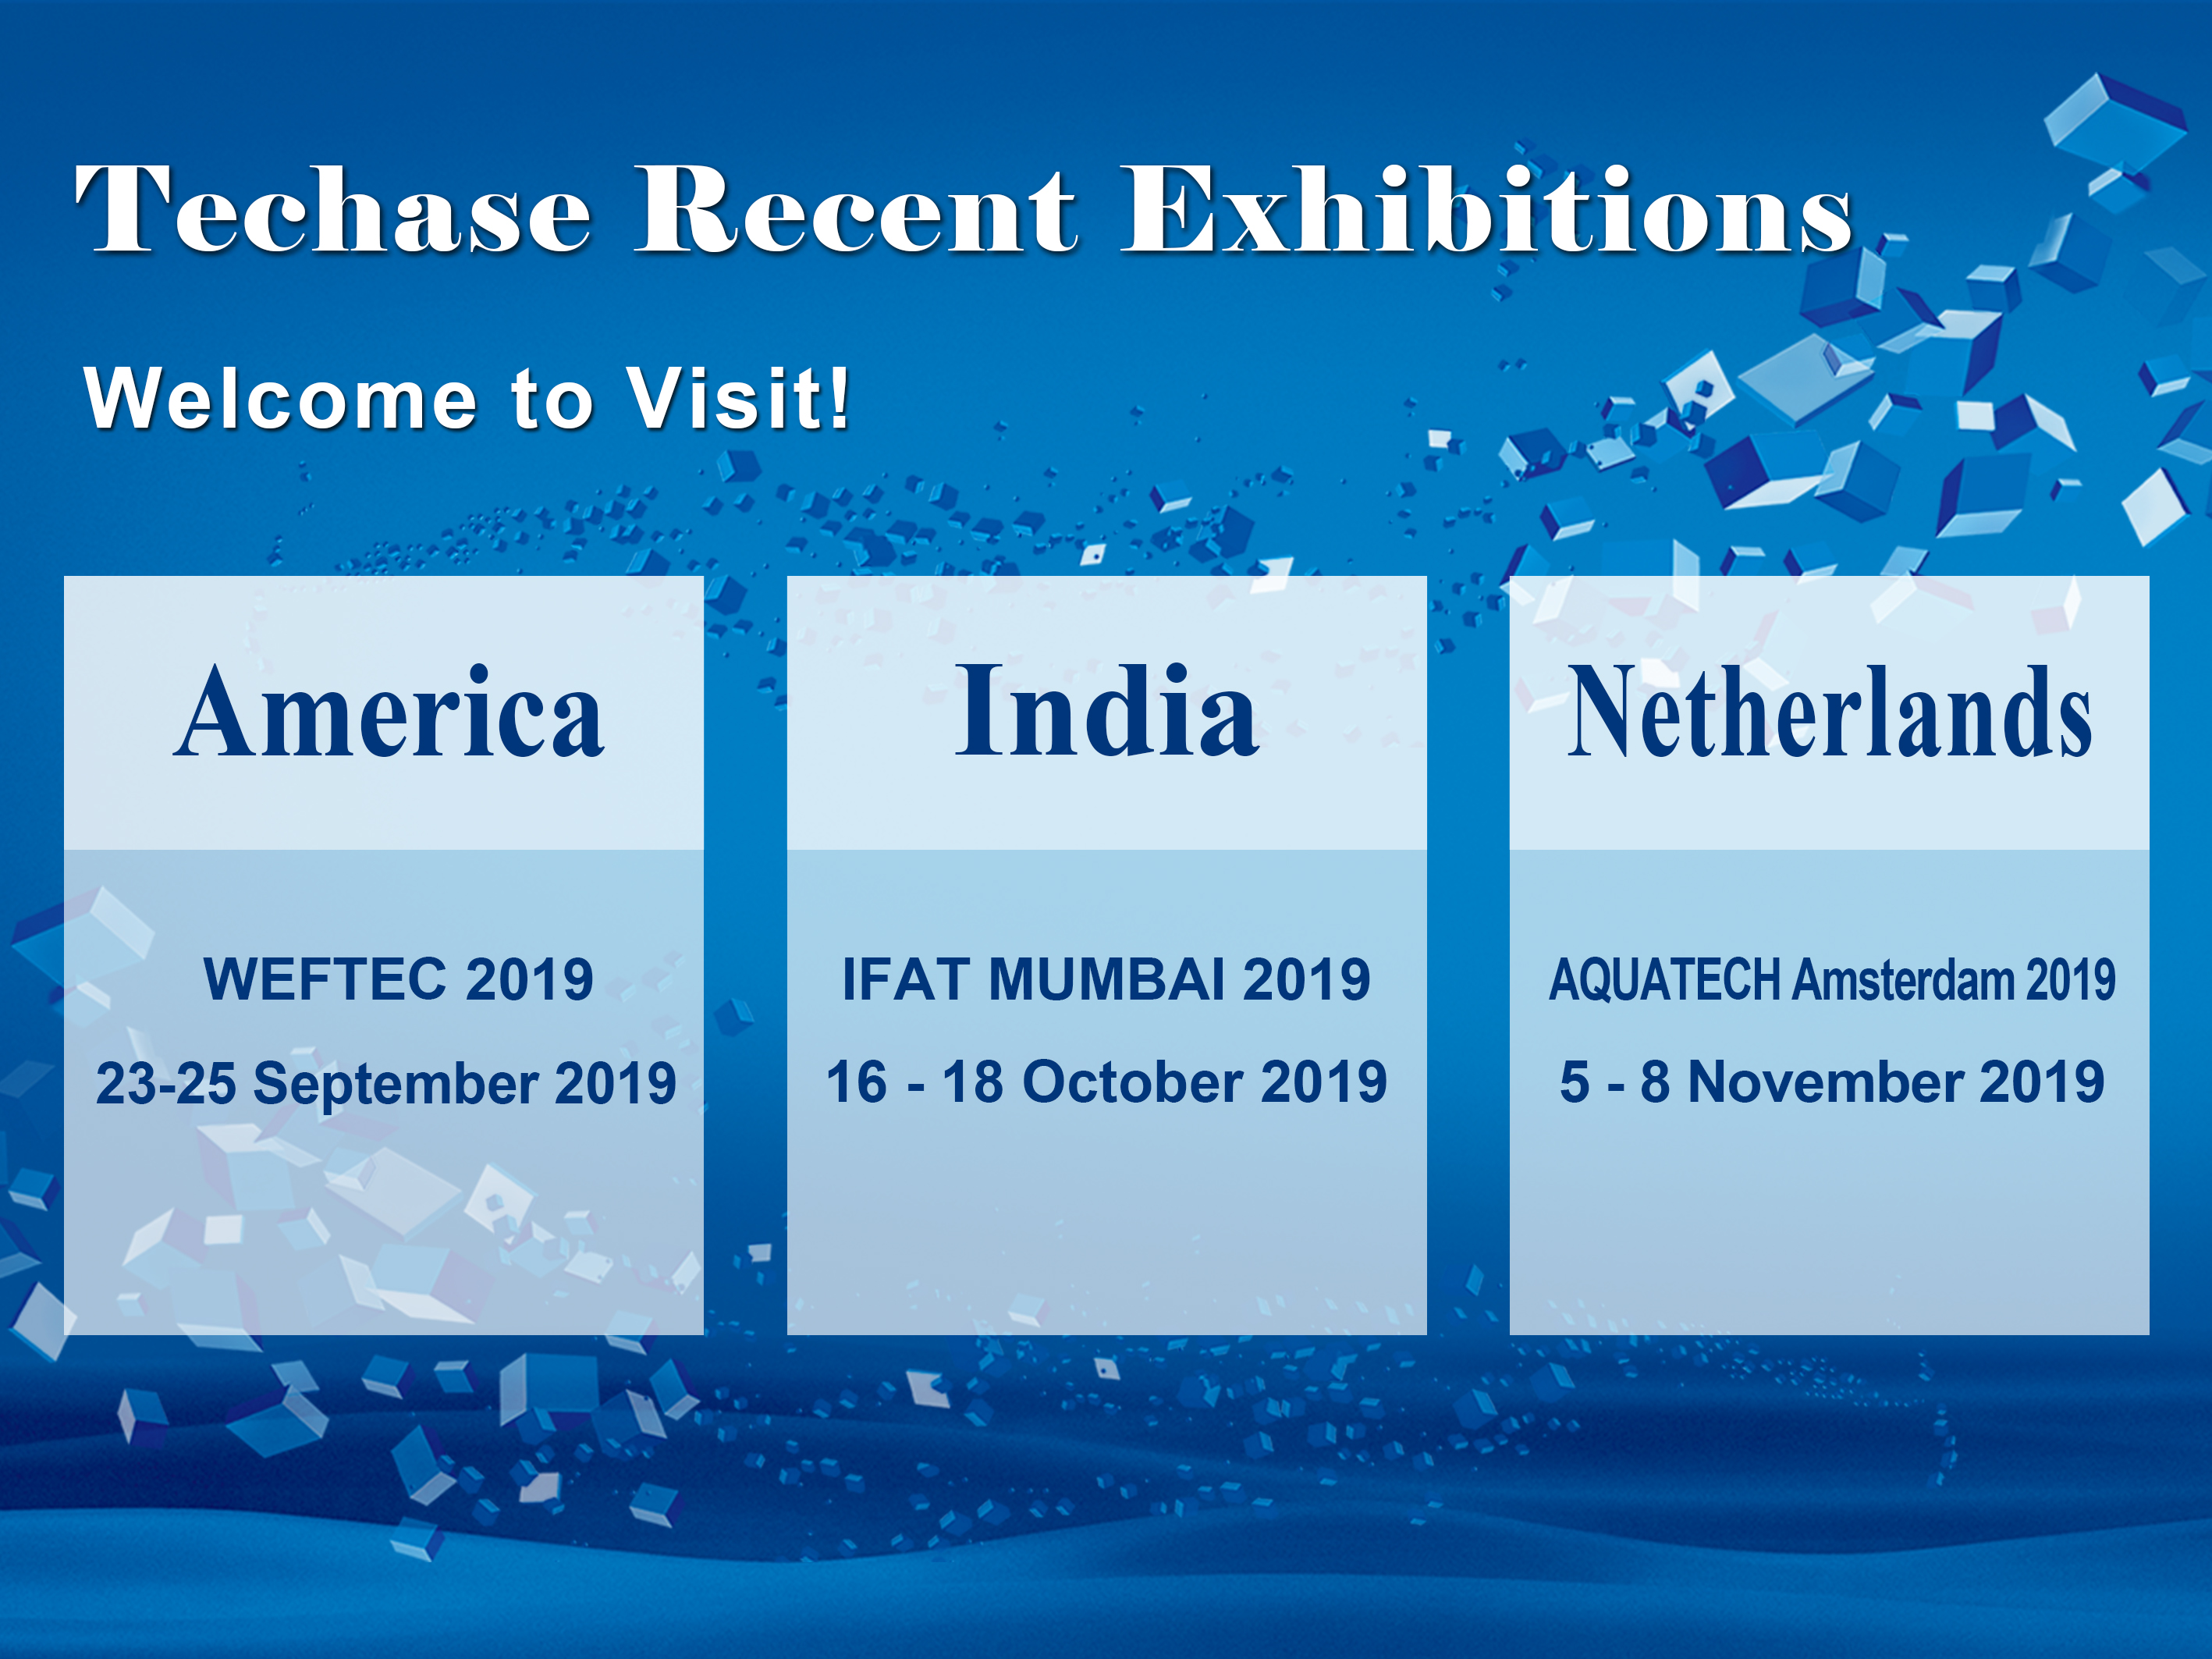 [Techase Exhibition Forecast] WEFTEC IFAT & AQUATECH